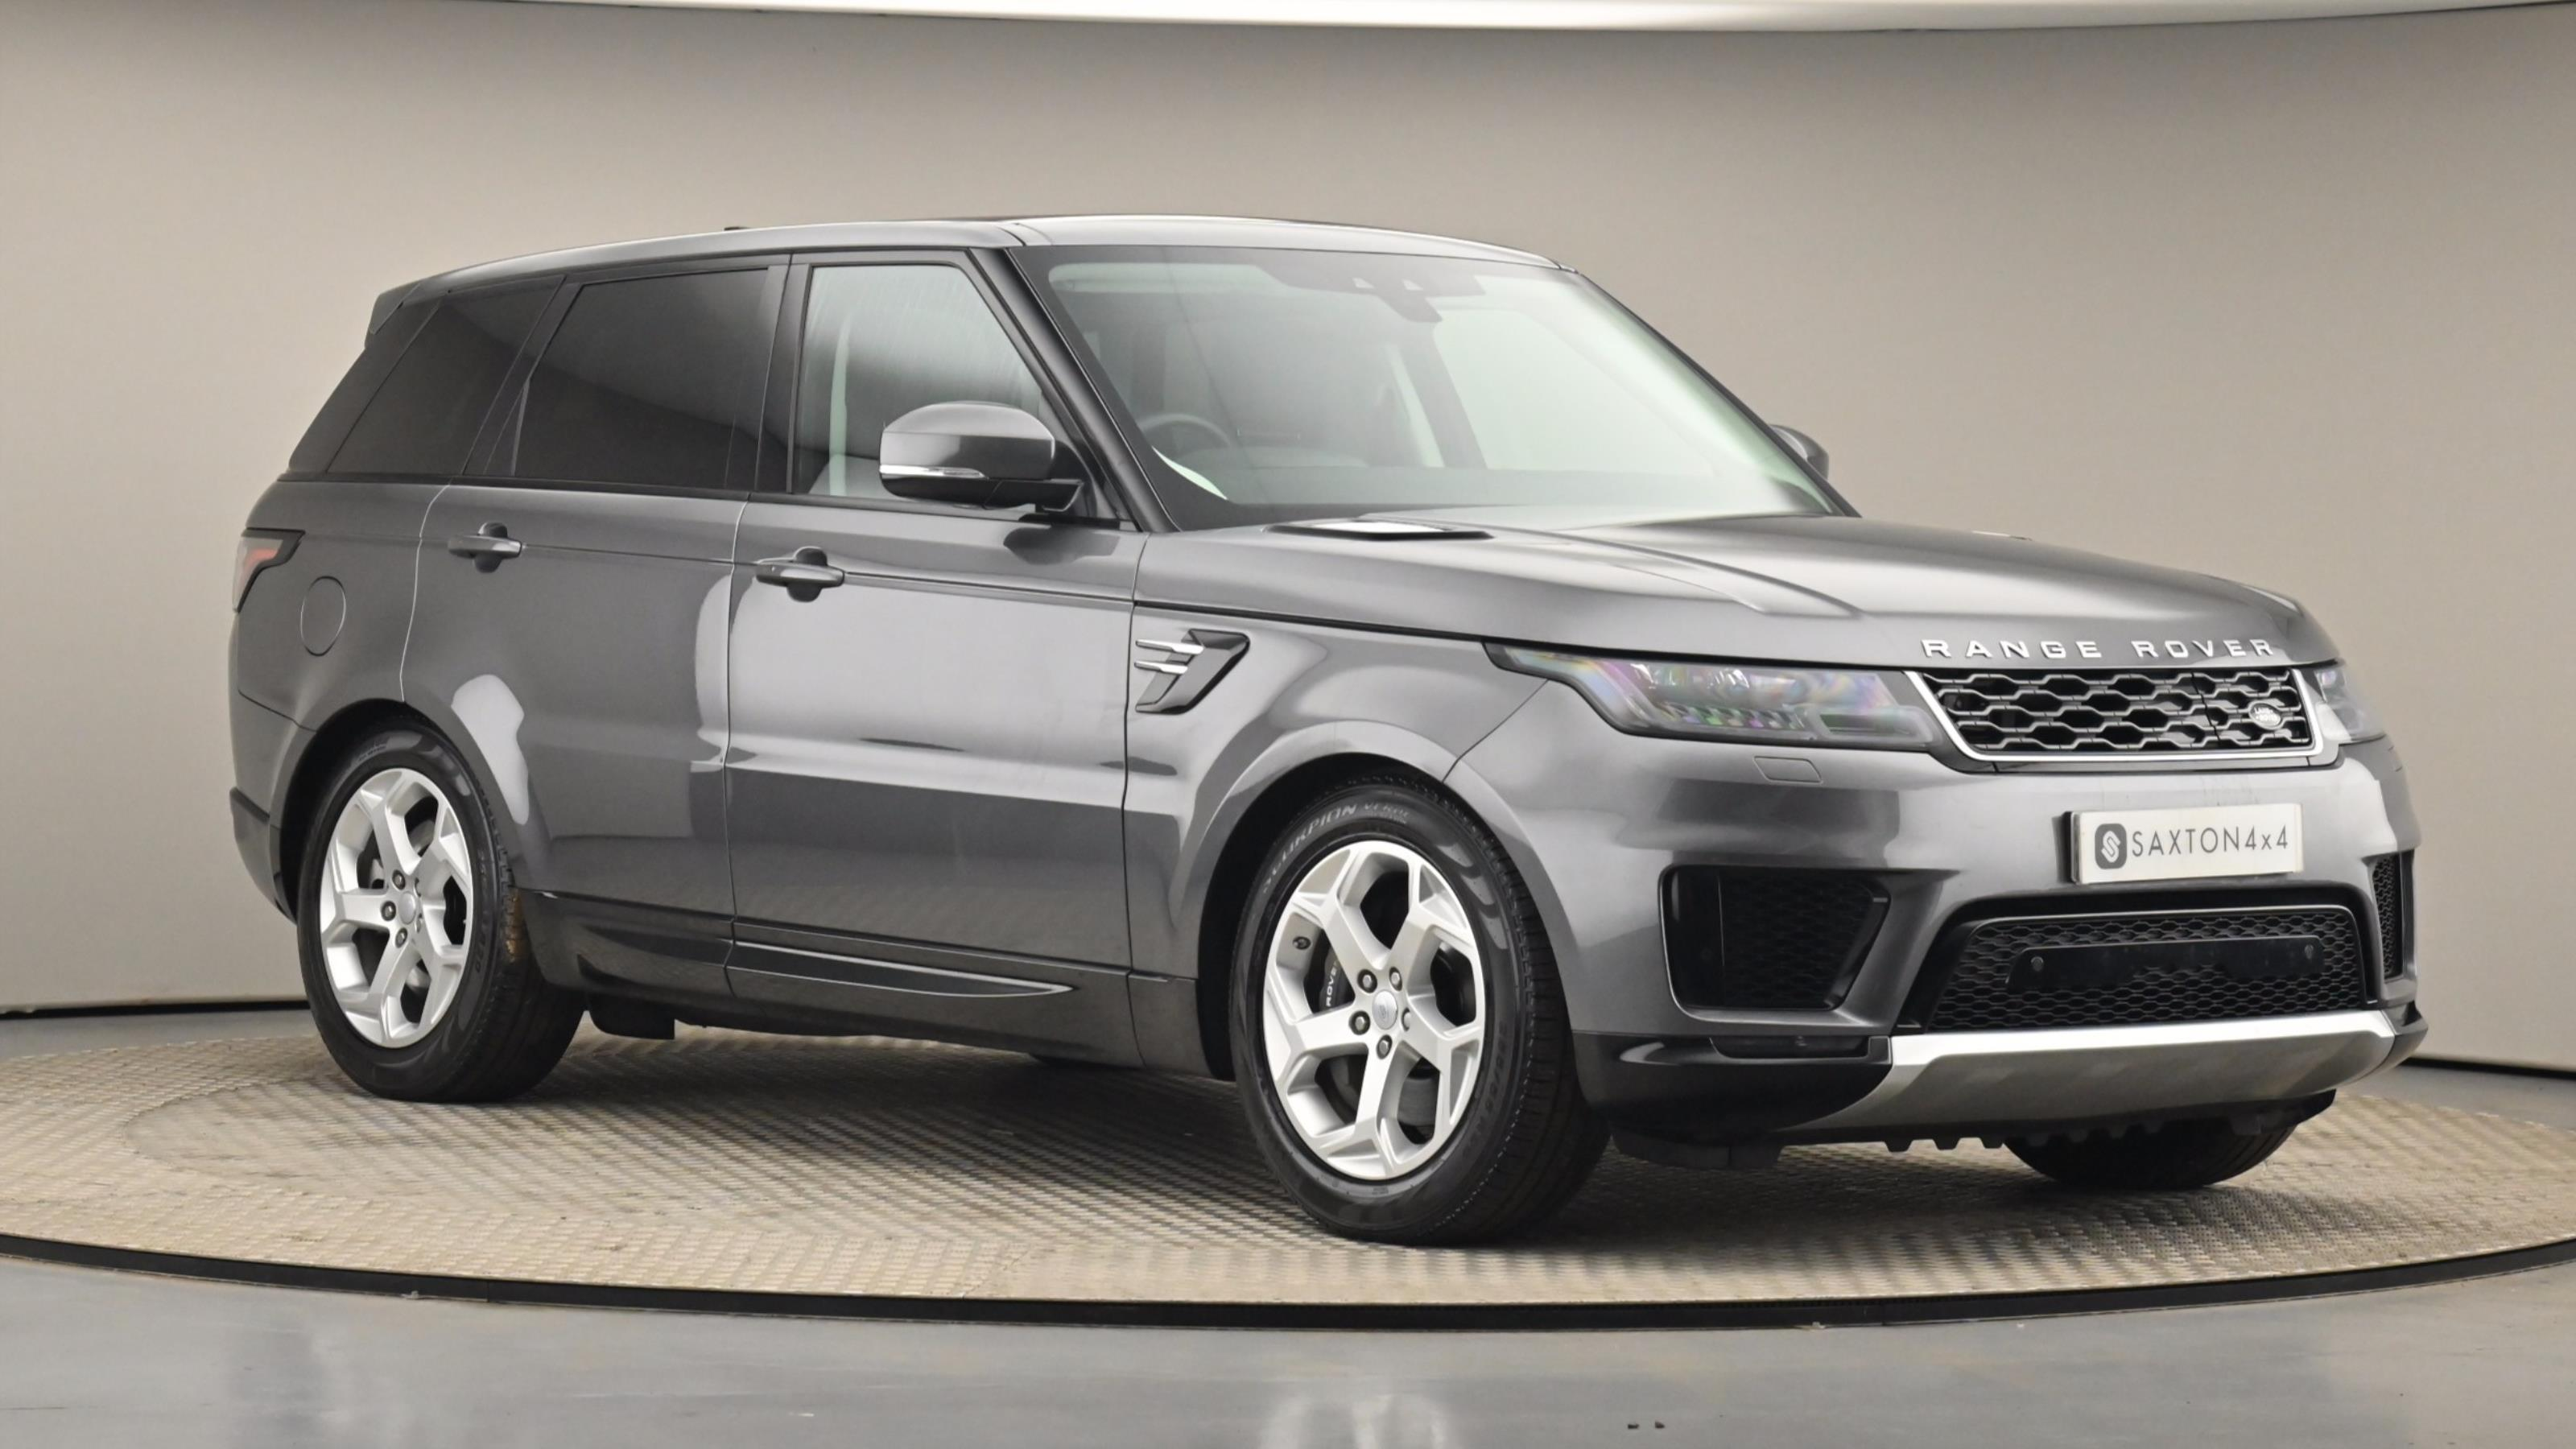 Used 2018 Land Rover RANGE ROVER SPORT 2.0 P400e HSE 5dr Auto GREY at Saxton4x4